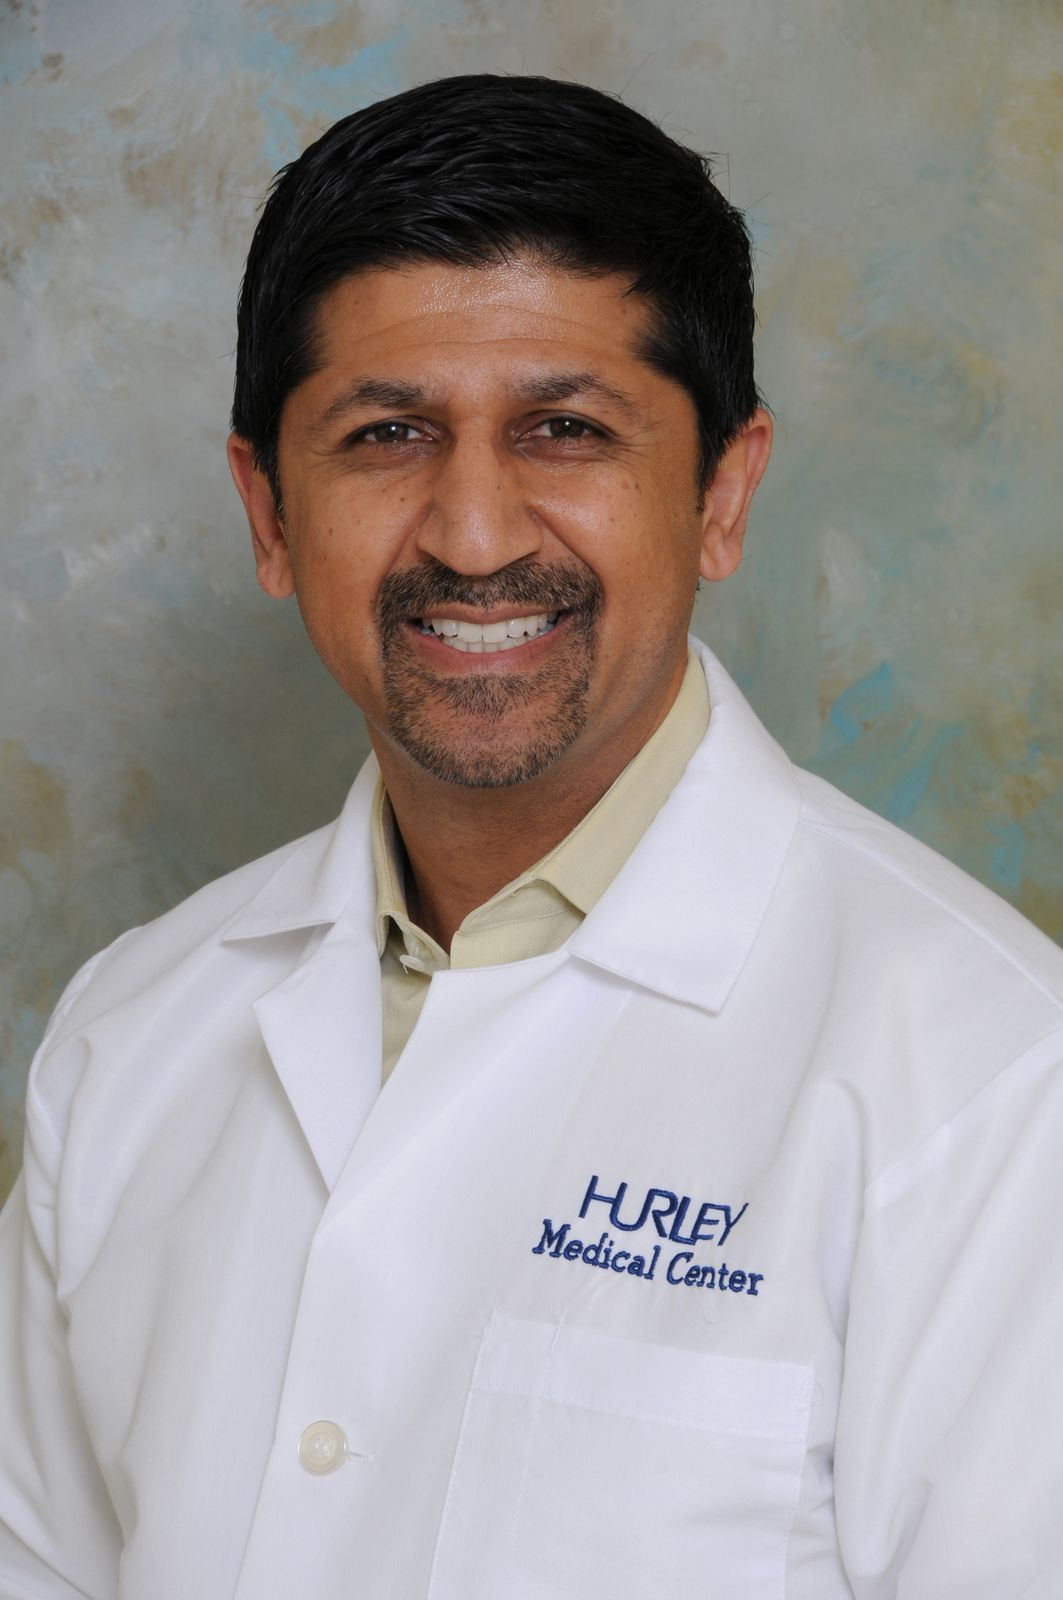 Hurley Medical Center | A  George Dass